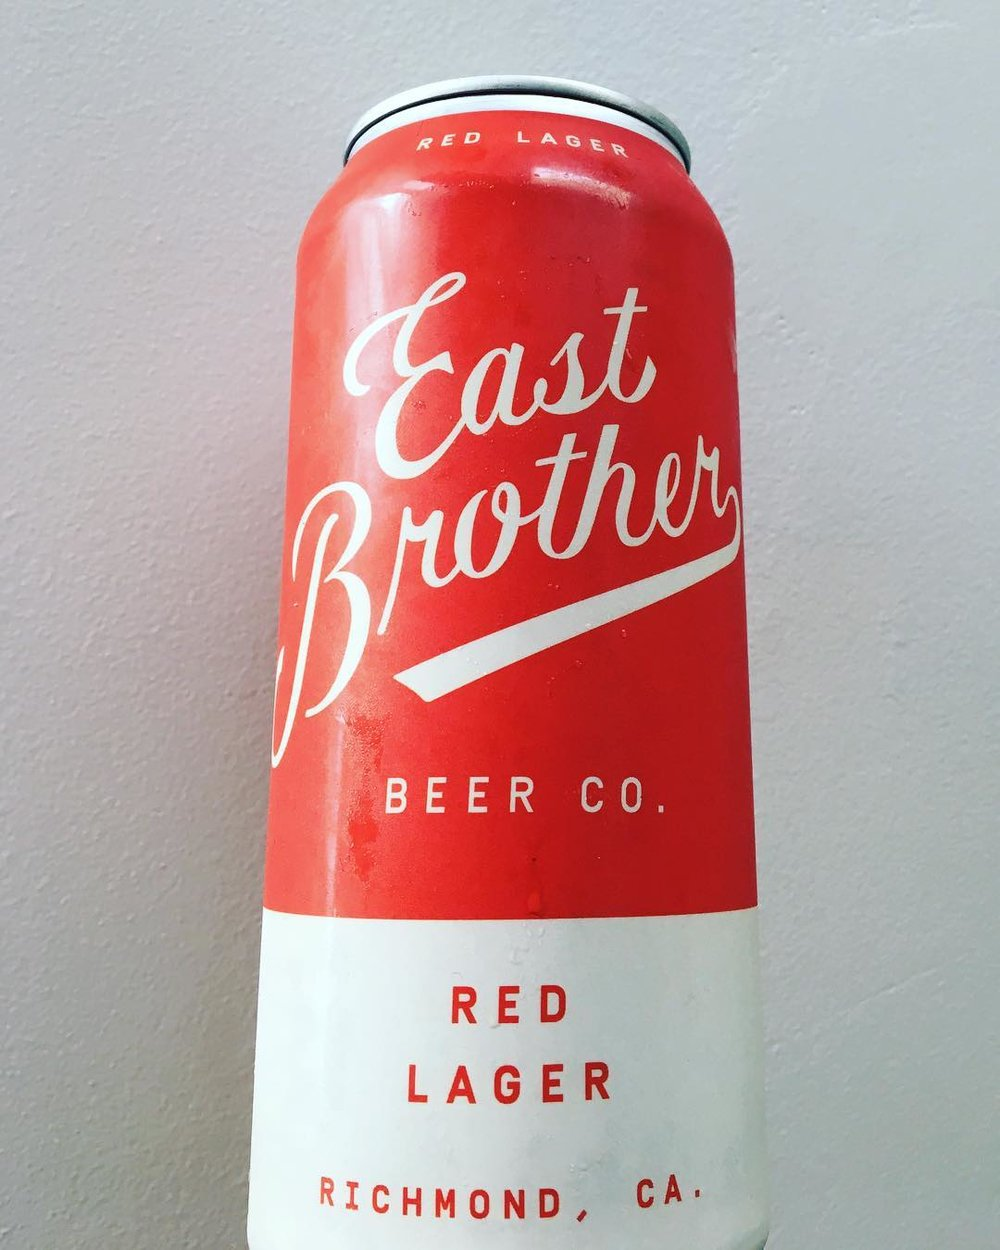 Support Local - Celebrate the end of the week with friends and drinks! Choose a beverage made locally, like East Brother Beer created over the bridge in Richmond, Ca. In fact the owners live in my neighborhood which really makes me want to cheers to local-made crafters and the weekend! #local #beer #littlethings #littleactsbigchange #craftbeer #shoplocal #bayarea #instagood #instaday #happyfriday